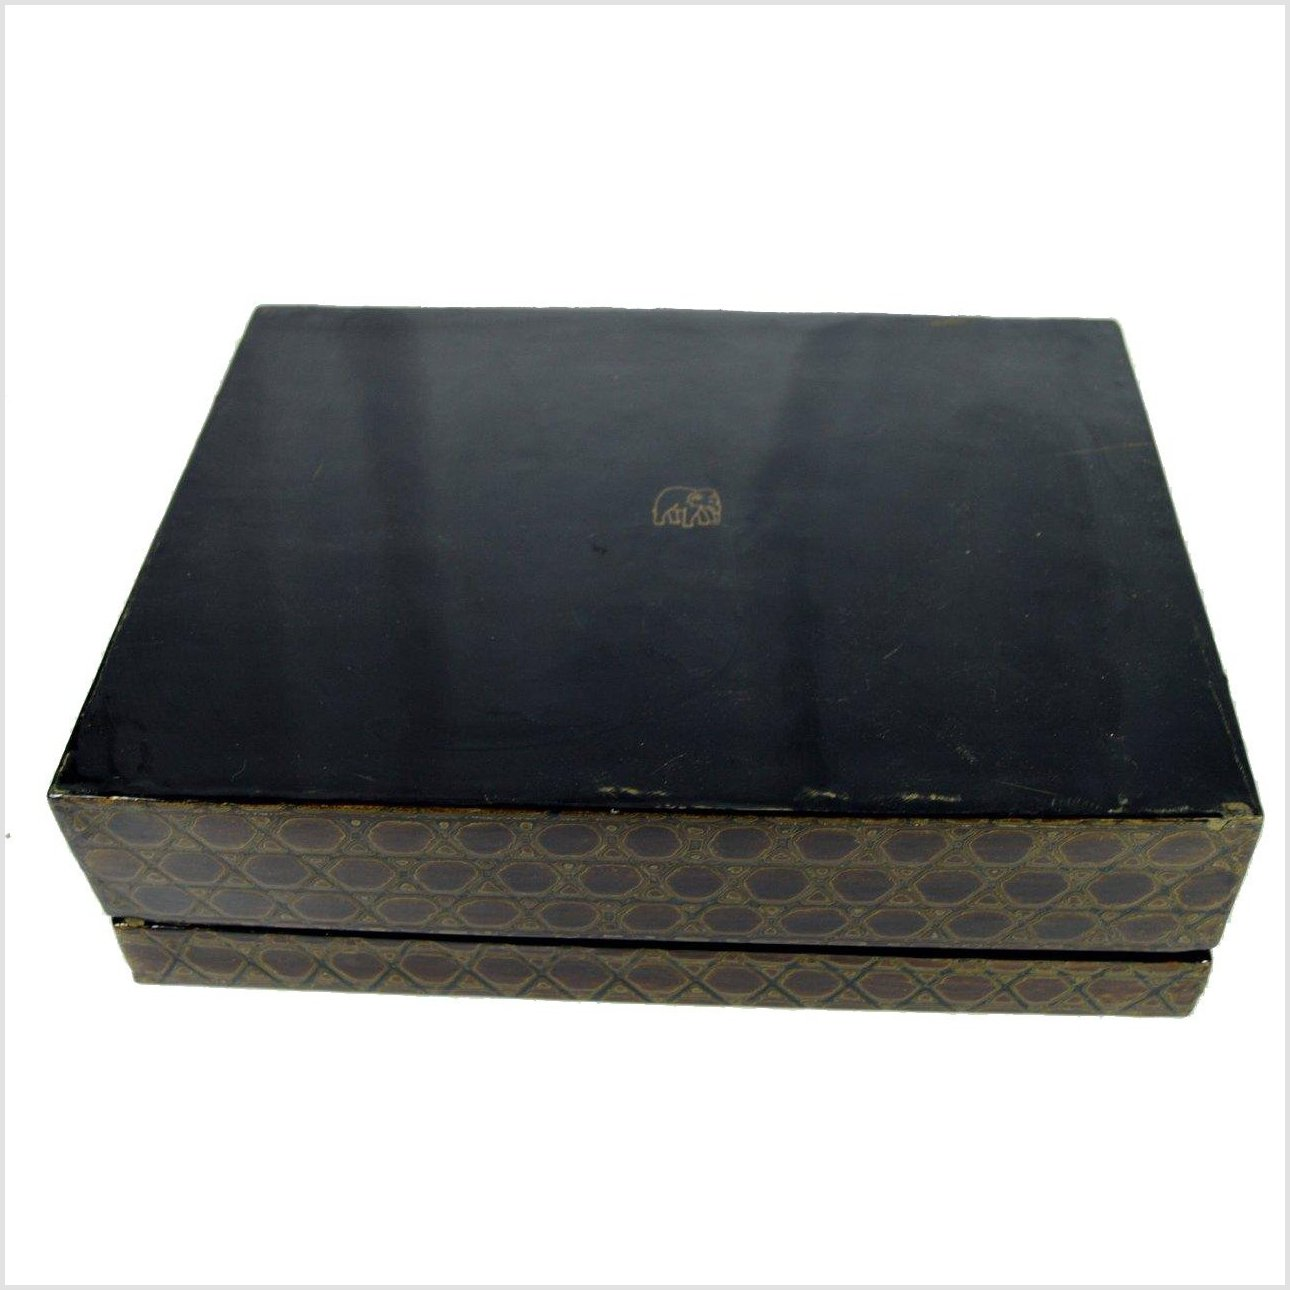 Japanese Negoro Lacquerware Stationery Box